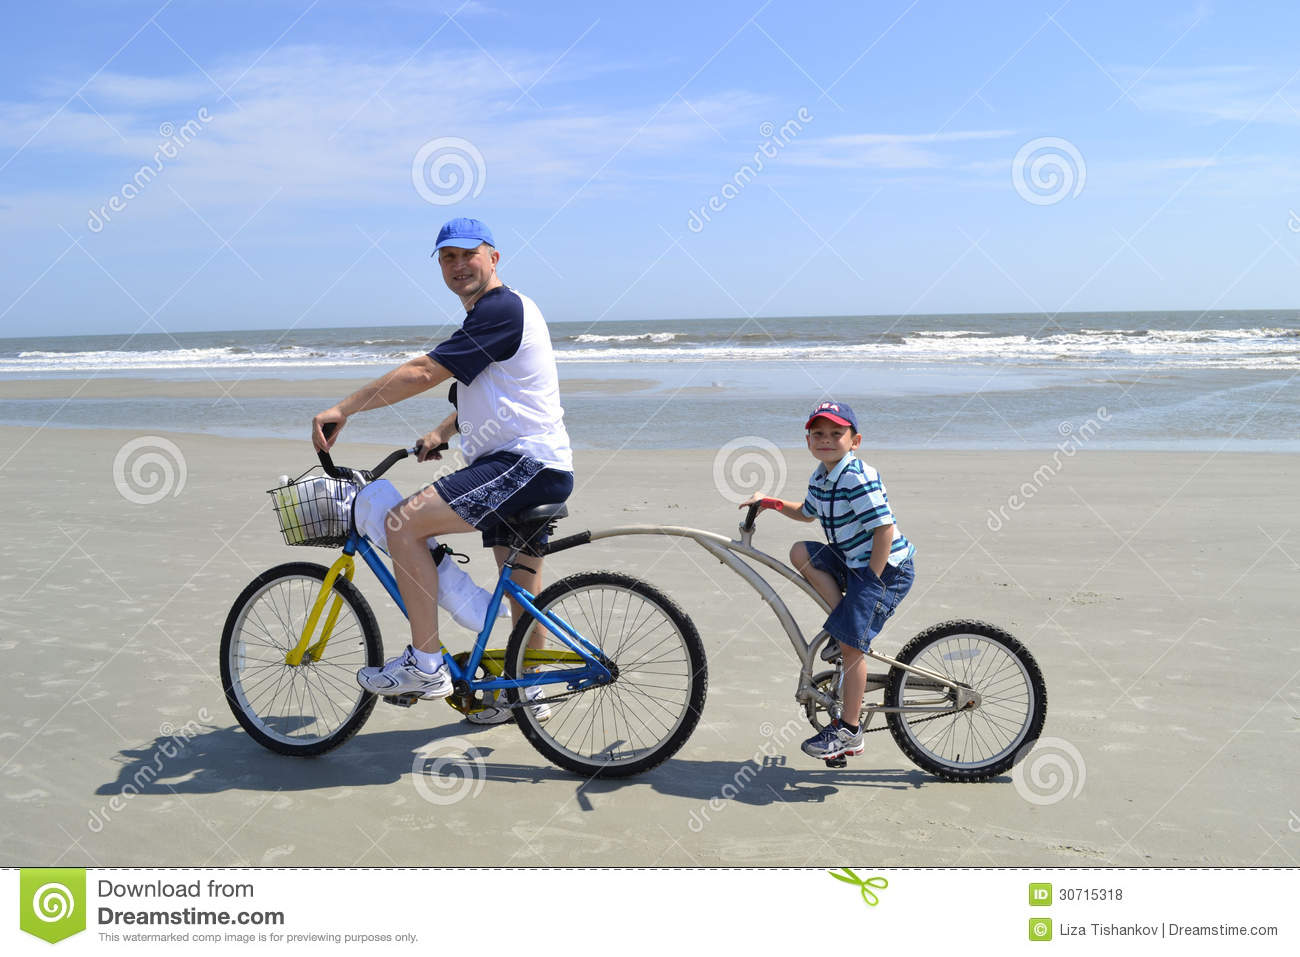 Father and son on alley cat bike at the beach